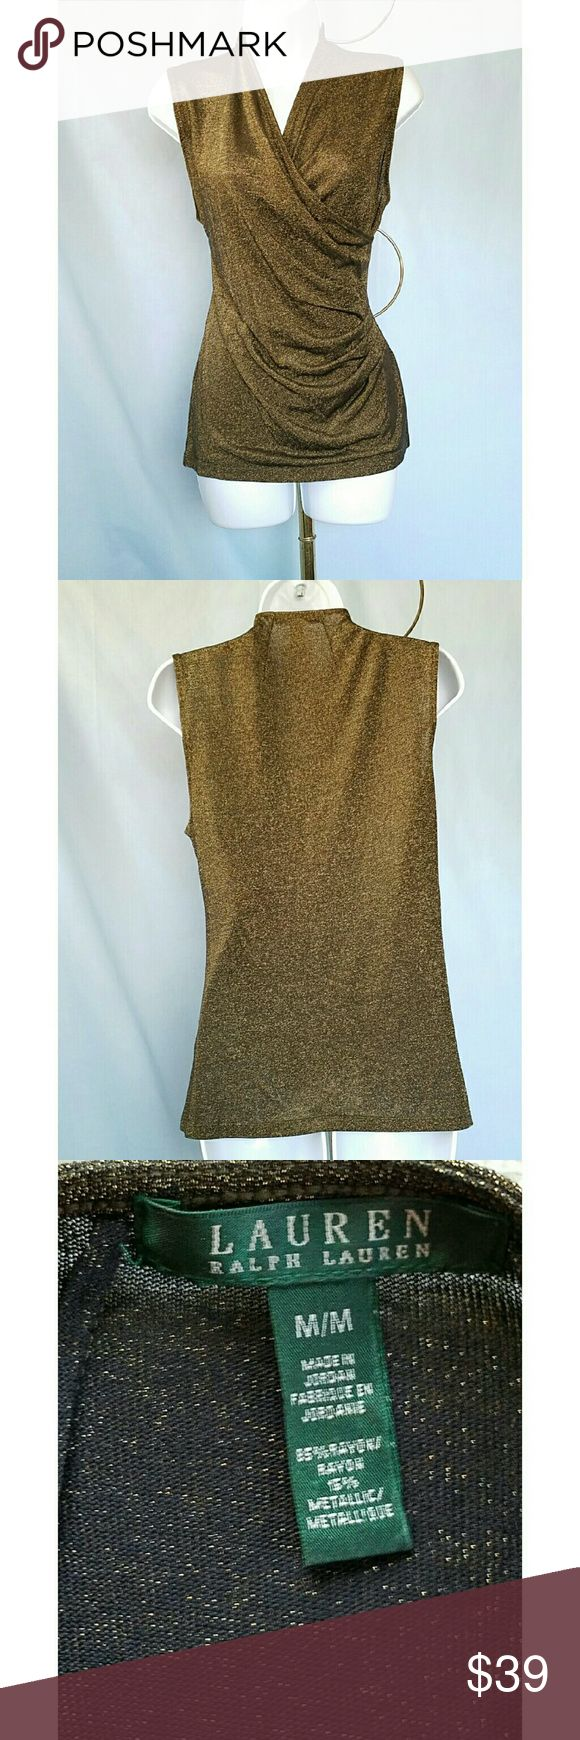 """⬇️RALPH LAUREN BLACK LABEL SPARKLY  BRONZE  TOP NWOT RALPH LAUREN SPARKLY BRONZE FAUX WRAP SLEEVELESS TOP Size M. Deep V-neck faux wrap is ruched at the side for dramatic effect! 85% rayon and 15% metallic  Armpit to armpit is 16"""" and shoulder to hem length is 24.5"""". All measurements are approximate and taken flat. Pristine condition ~ looks brand new. Ralph Lauren Black Label Tops Tank Tops"""